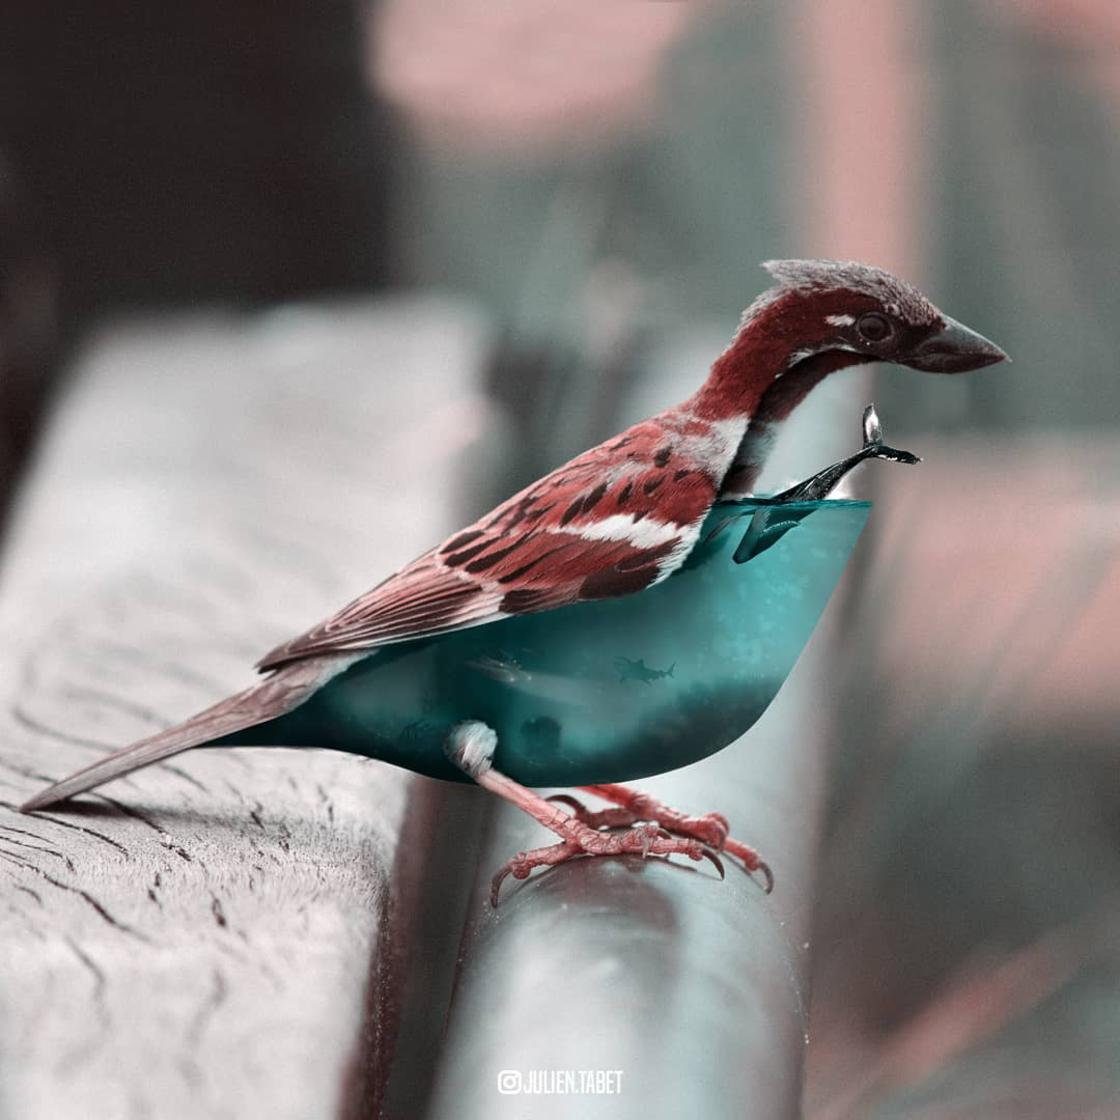 Fantastic Animals – The surreal creations of Julien Tabet